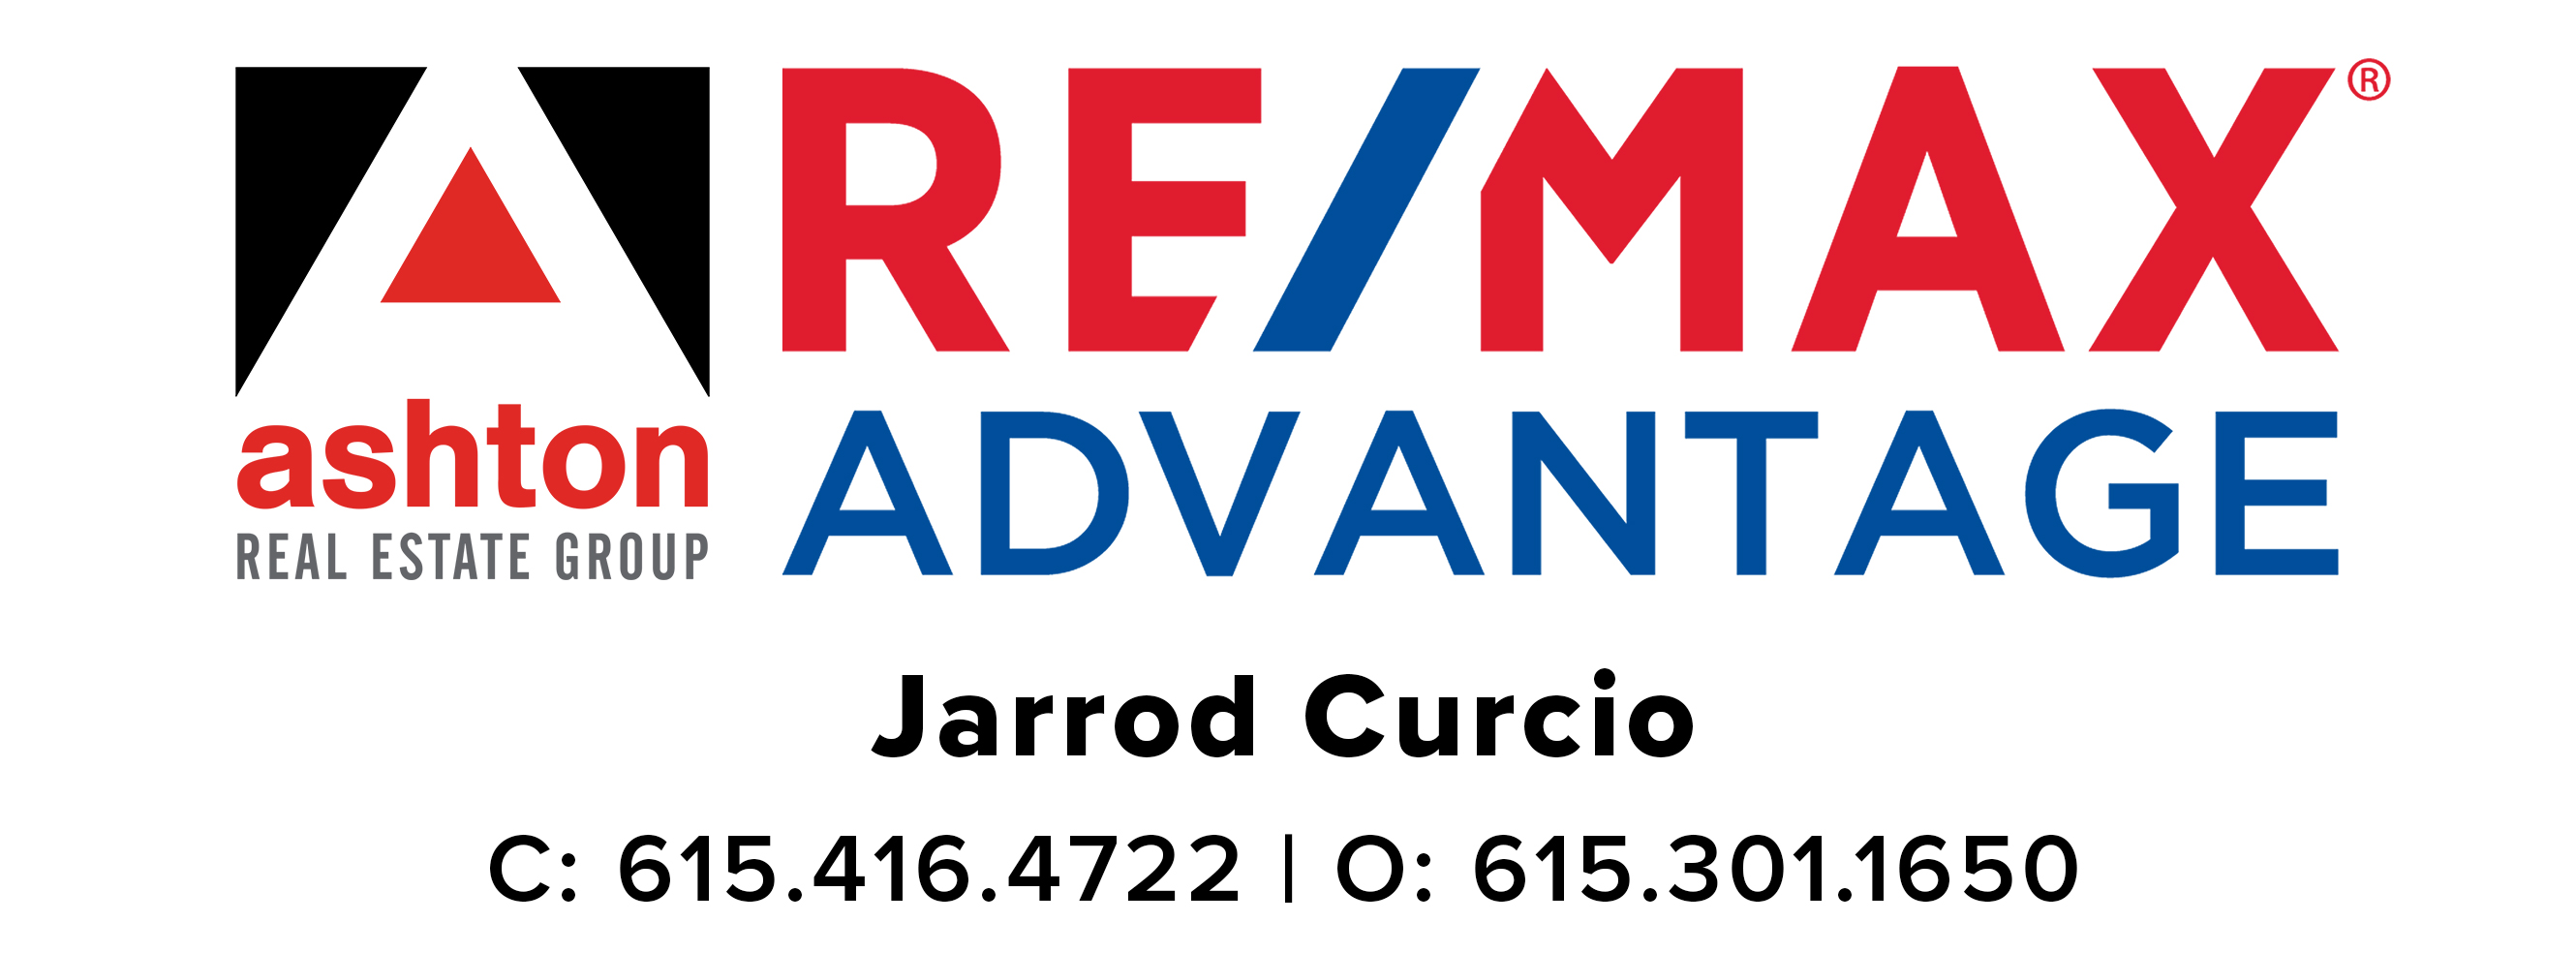 The Ashton Real Estate Group of RE/MAX Advantage